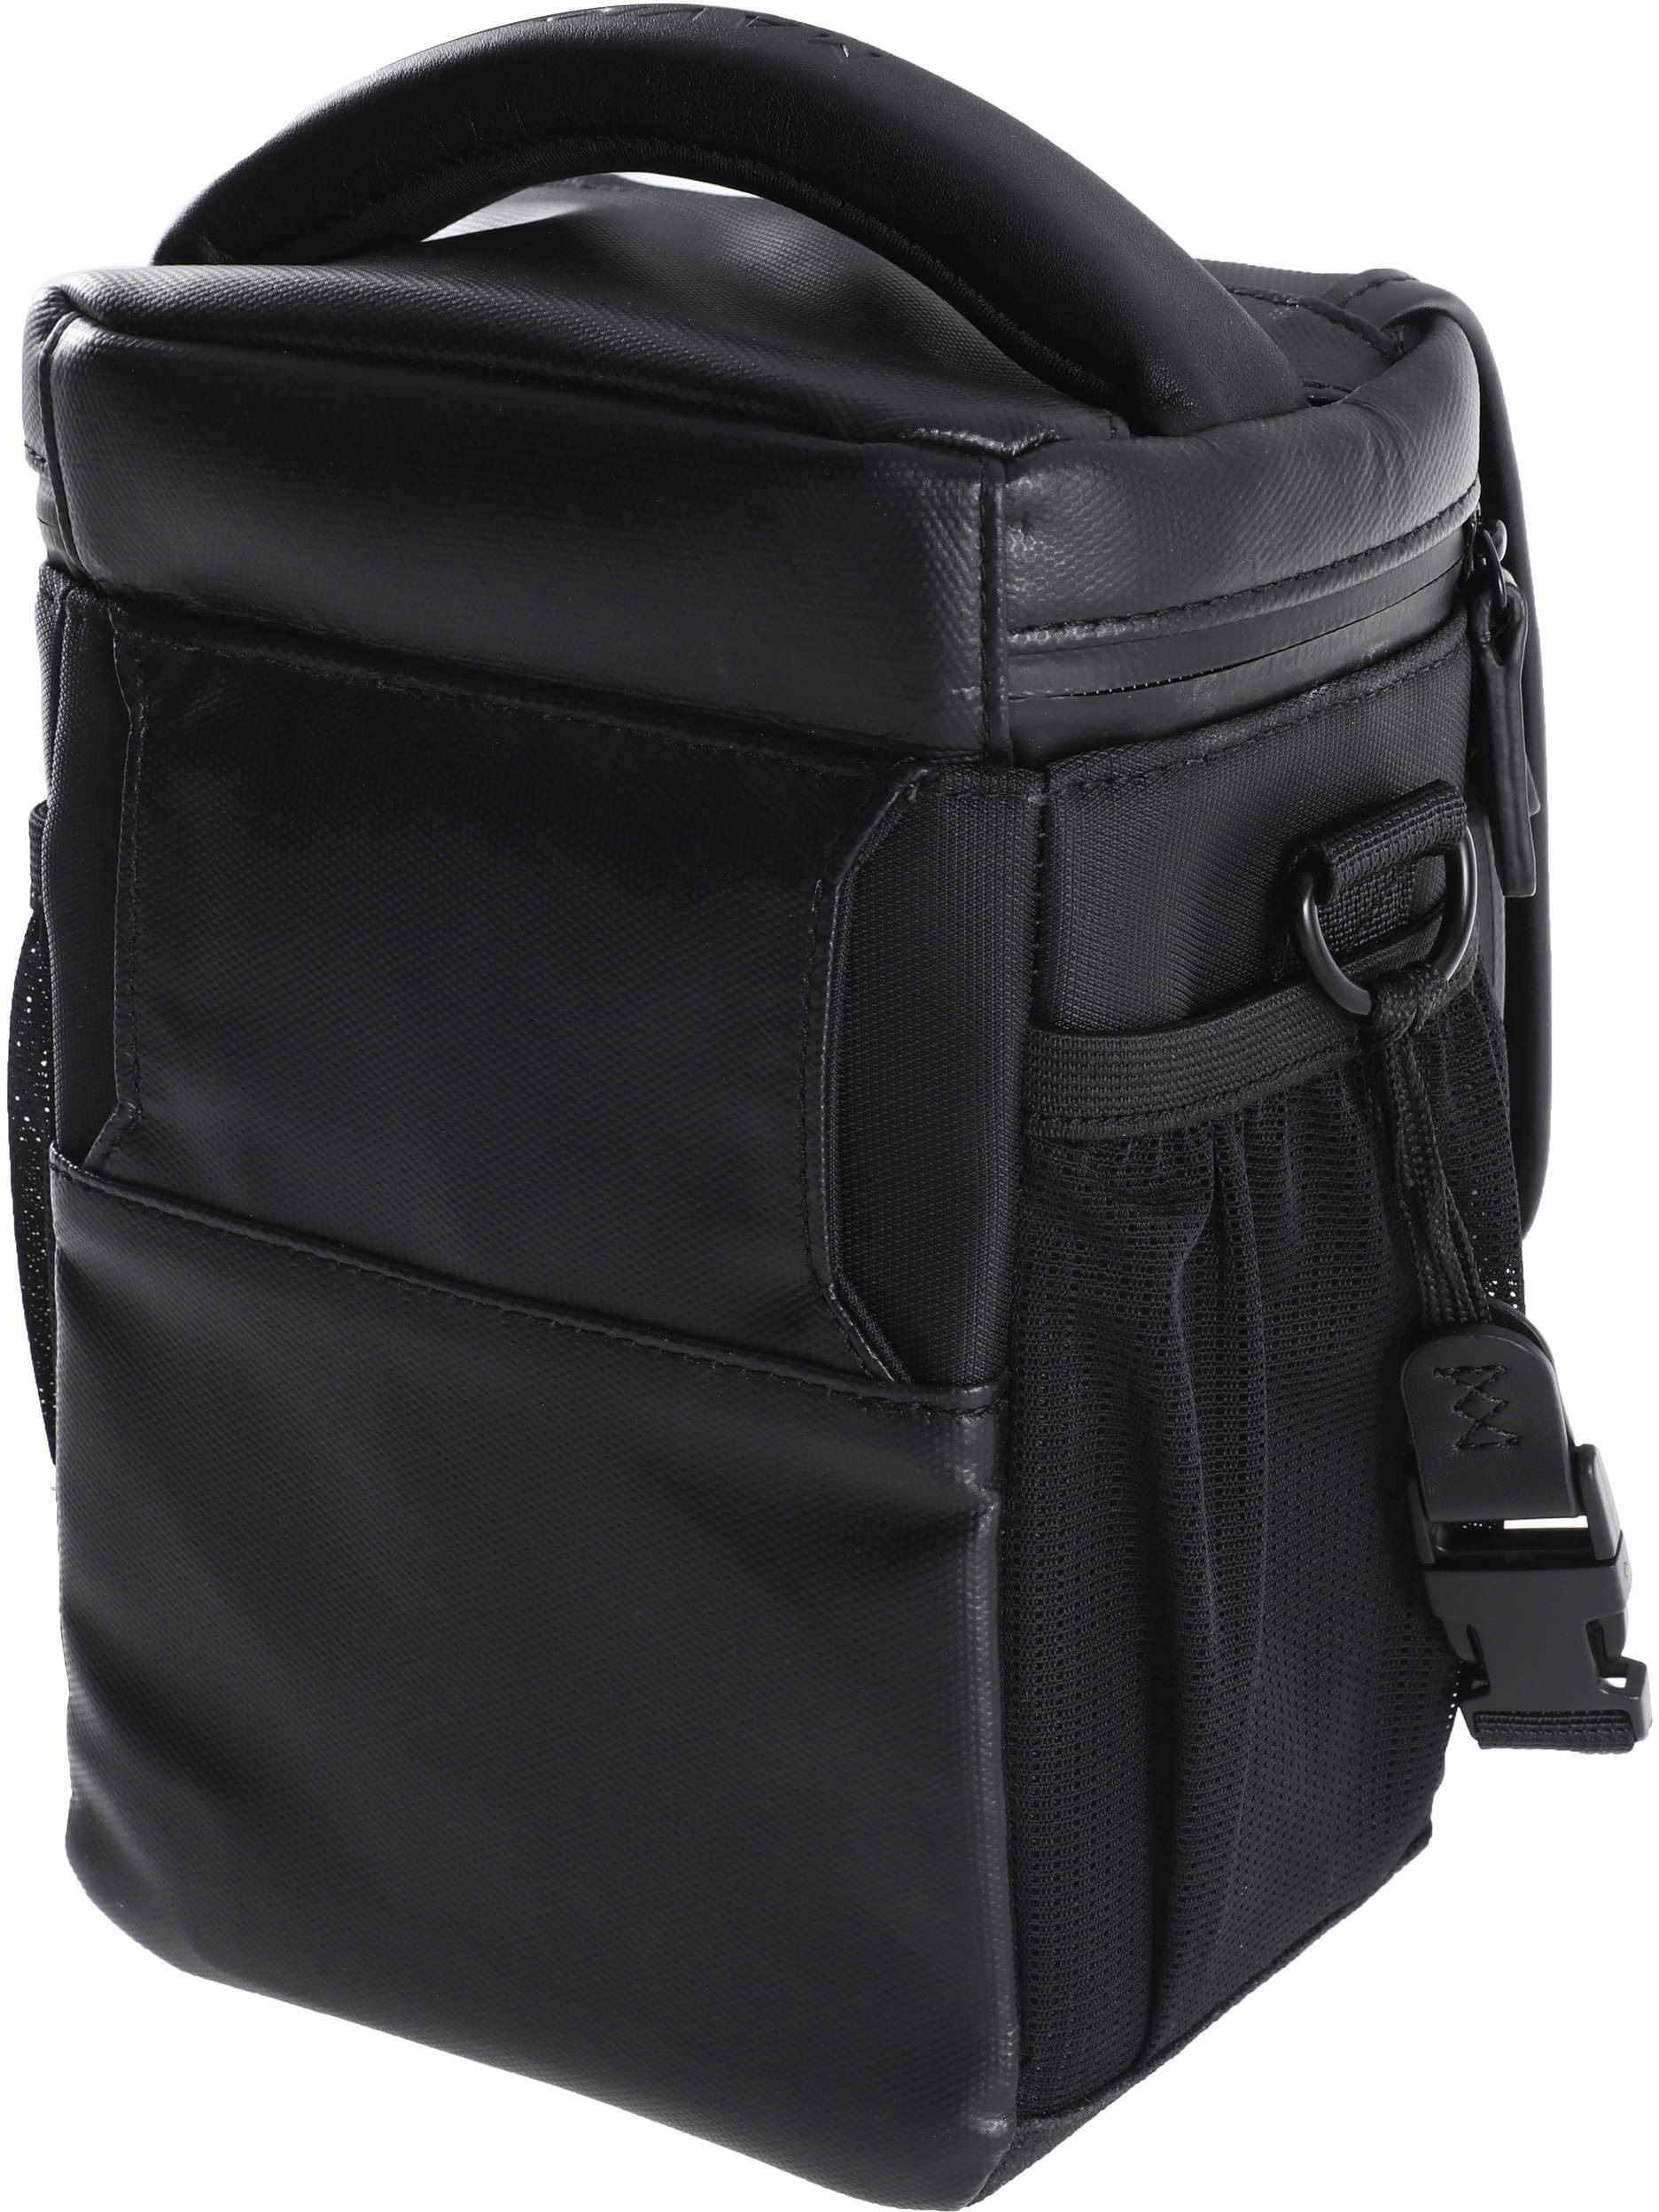 Сумка DJI Shoulder Bag (CP.PT.000591) для Mavic Pro-2